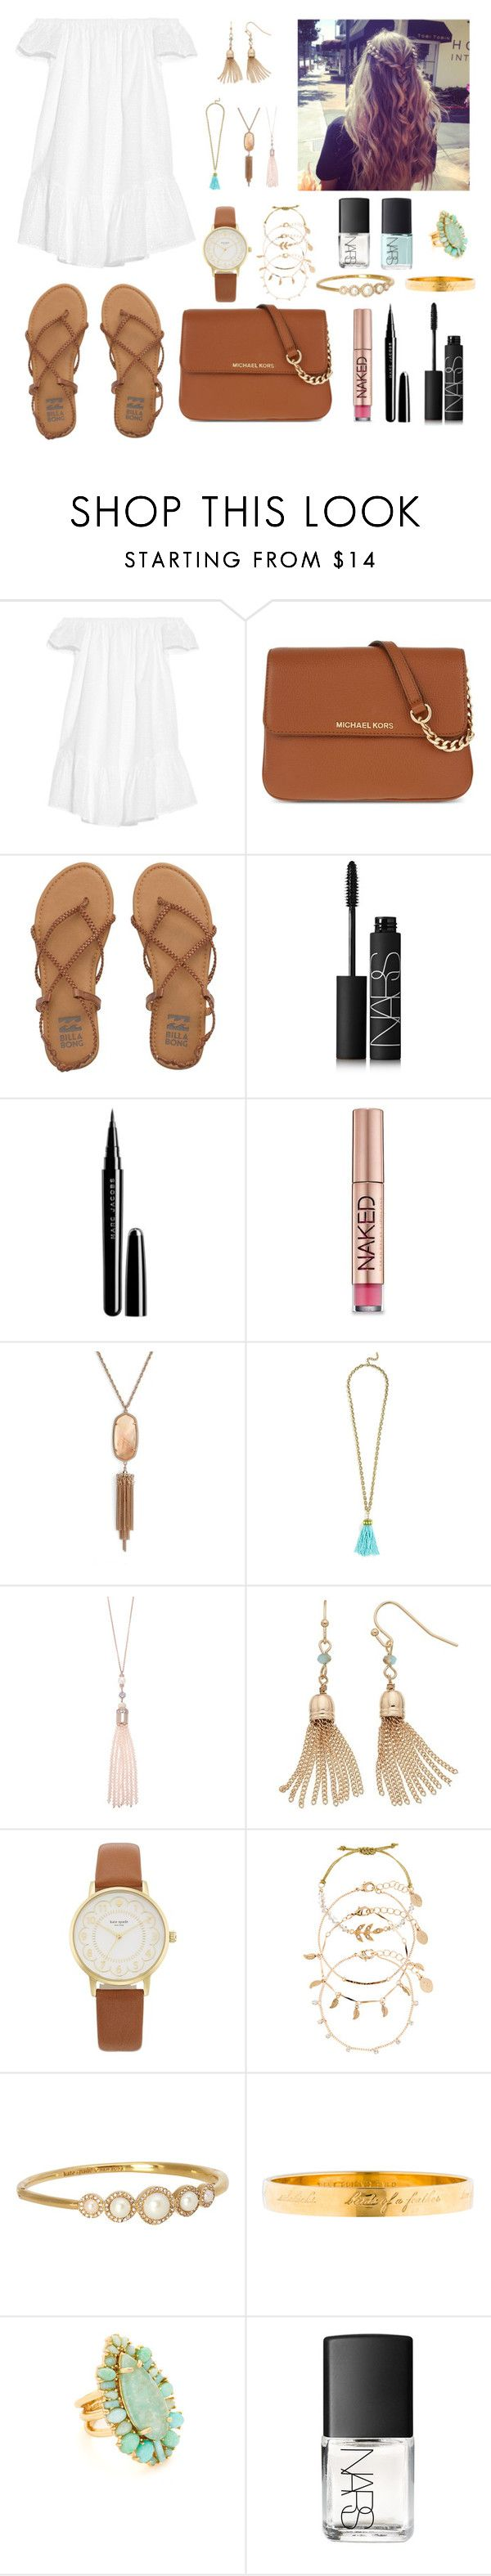 Untitled #190 by katymccord77 ❤ liked on Polyvore featuring Elizabeth and James, MICHAEL Michael Kors, Billabong, NARS Cosmetics, Marc Jacobs, Urban Decay, Kendra Scott, BaubleBar, Oasis and LC Lauren Conrad